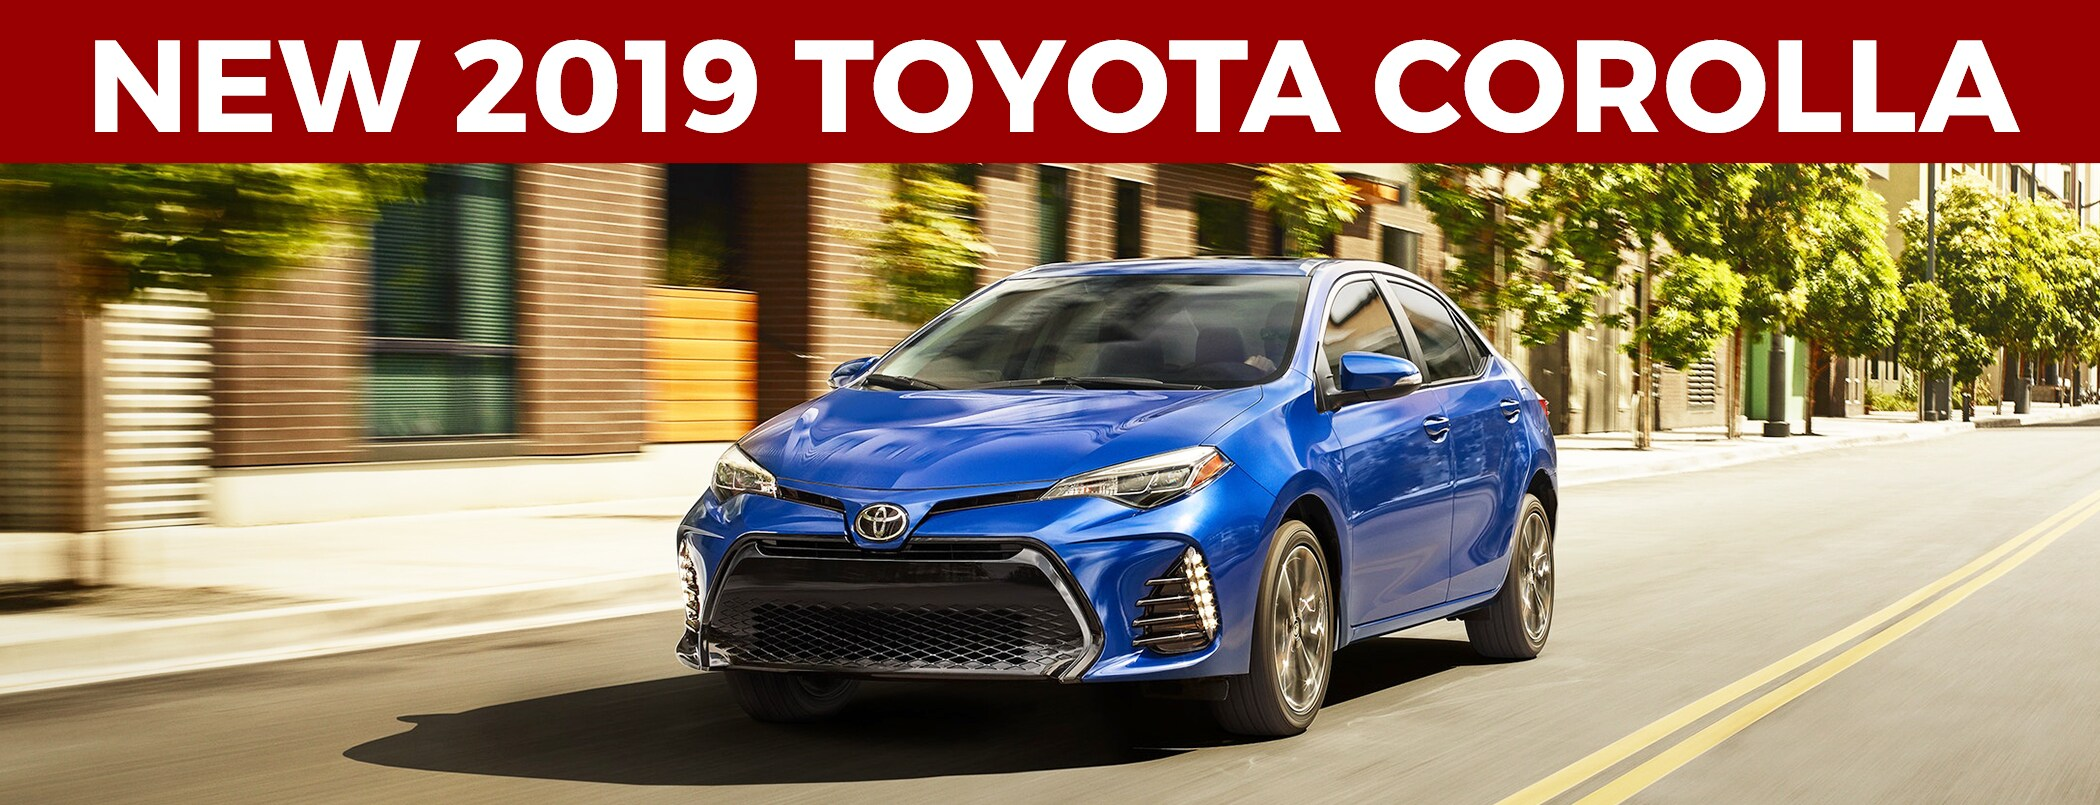 2019 Toyota Corolla Review Murray